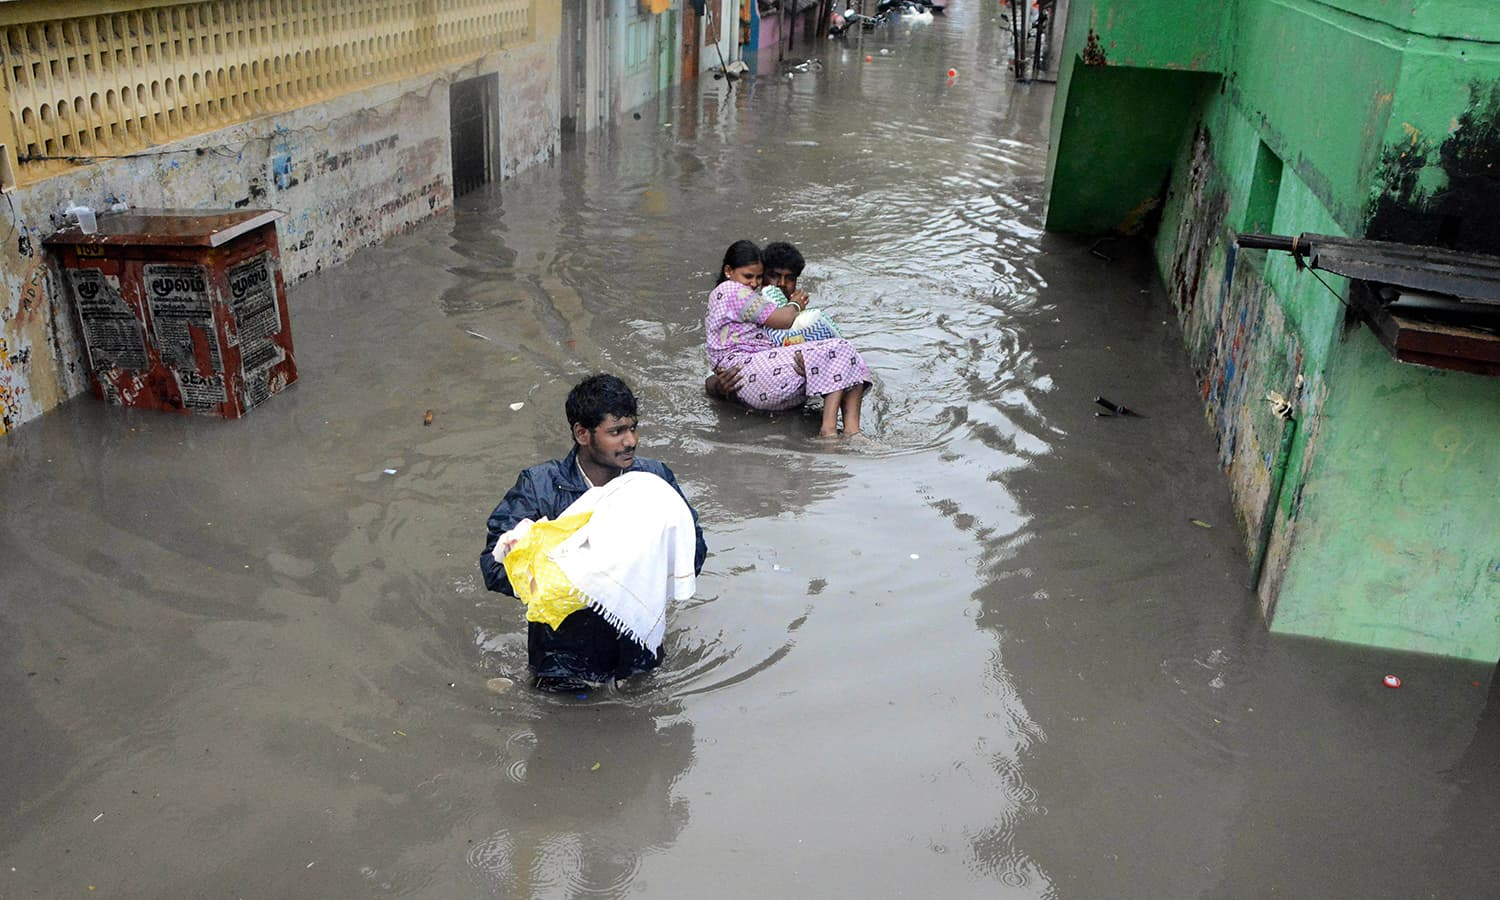 Indian residents walk through floodwaters in Chennai on December 2, 2015.  — AFP